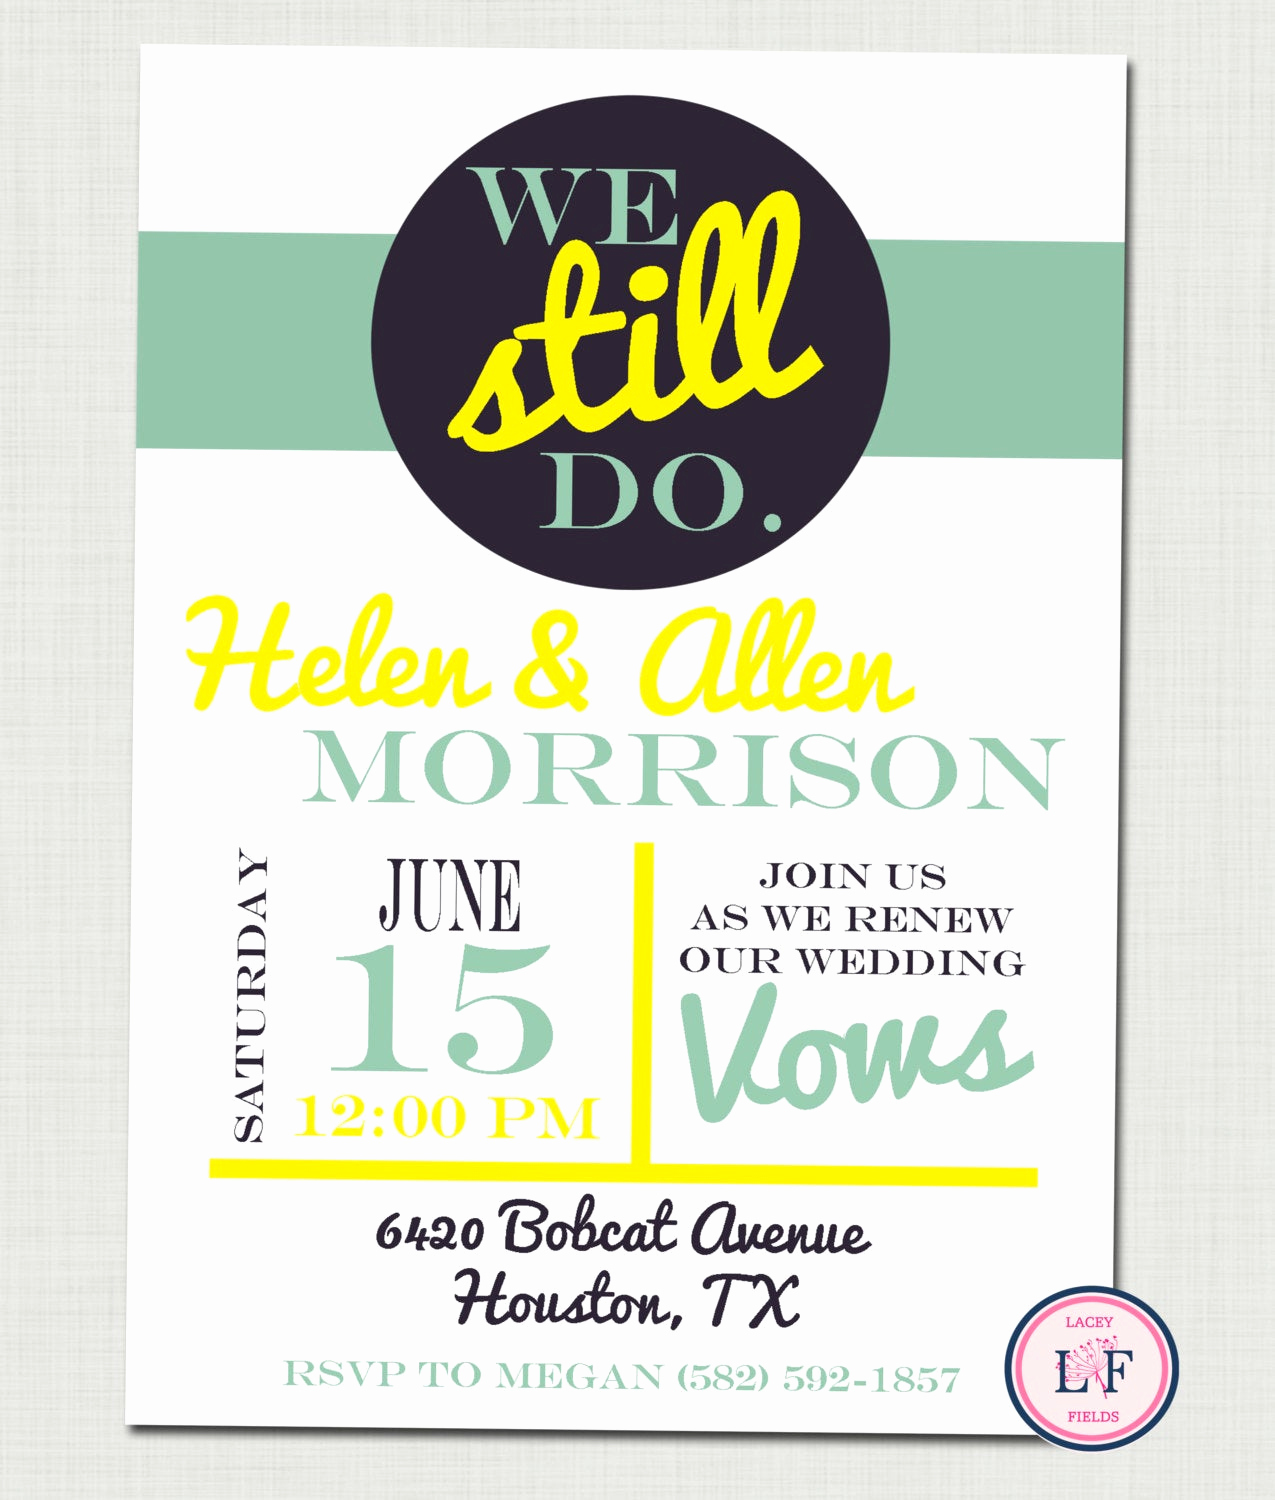 Funny Vow Renewal Invitation Wording Elegant Anniversary Party Invitation Vow Renewal Invite We by